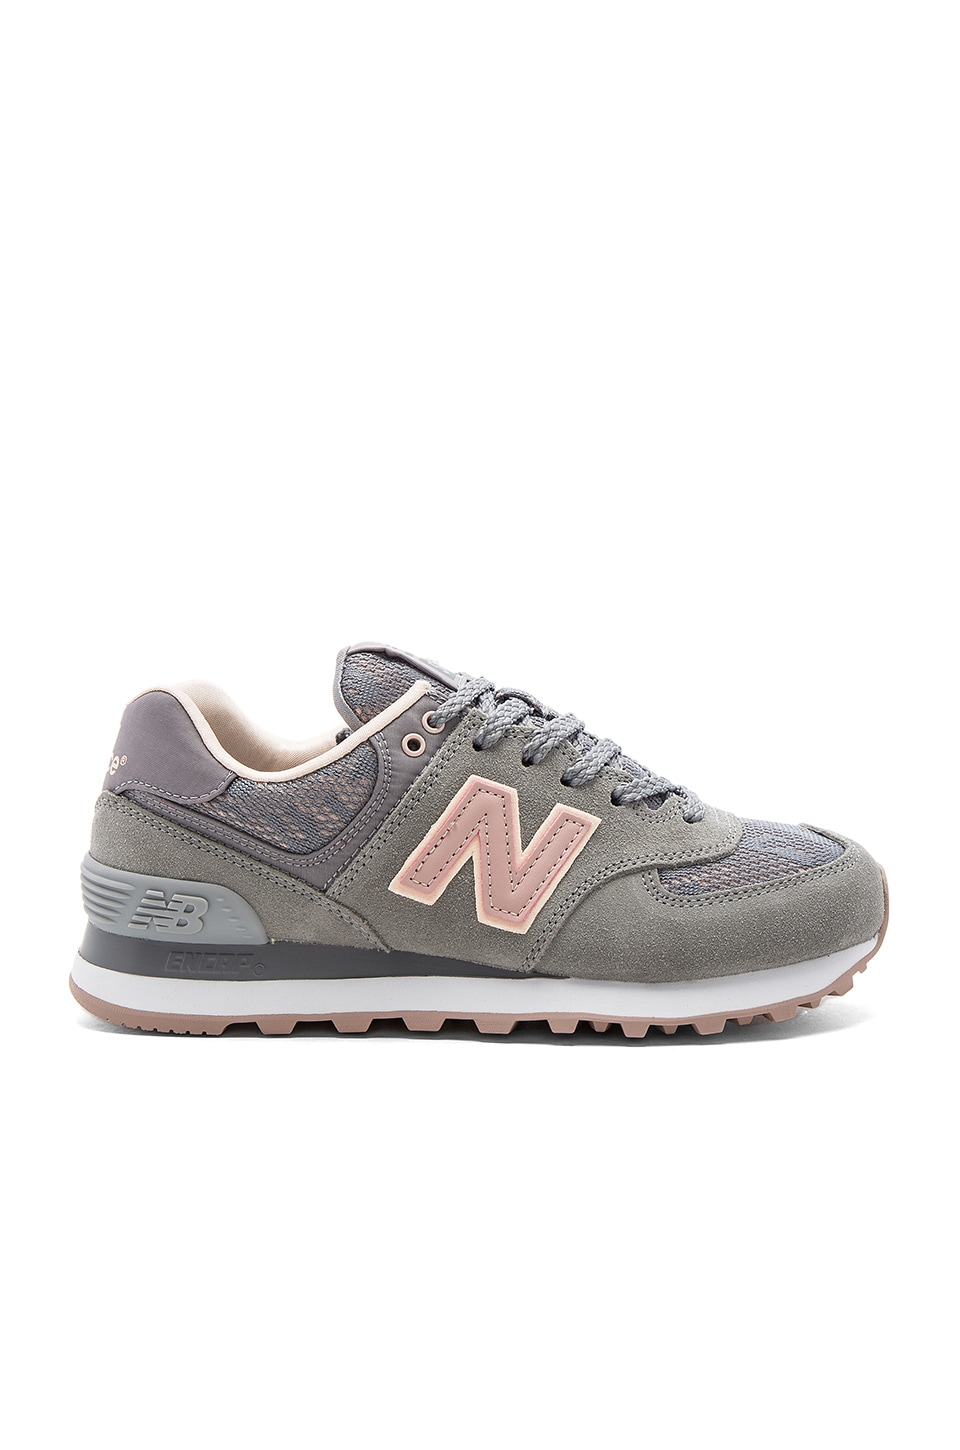 New Balance Nouveau Lace Sneaker in Steel, Charm, & Shell